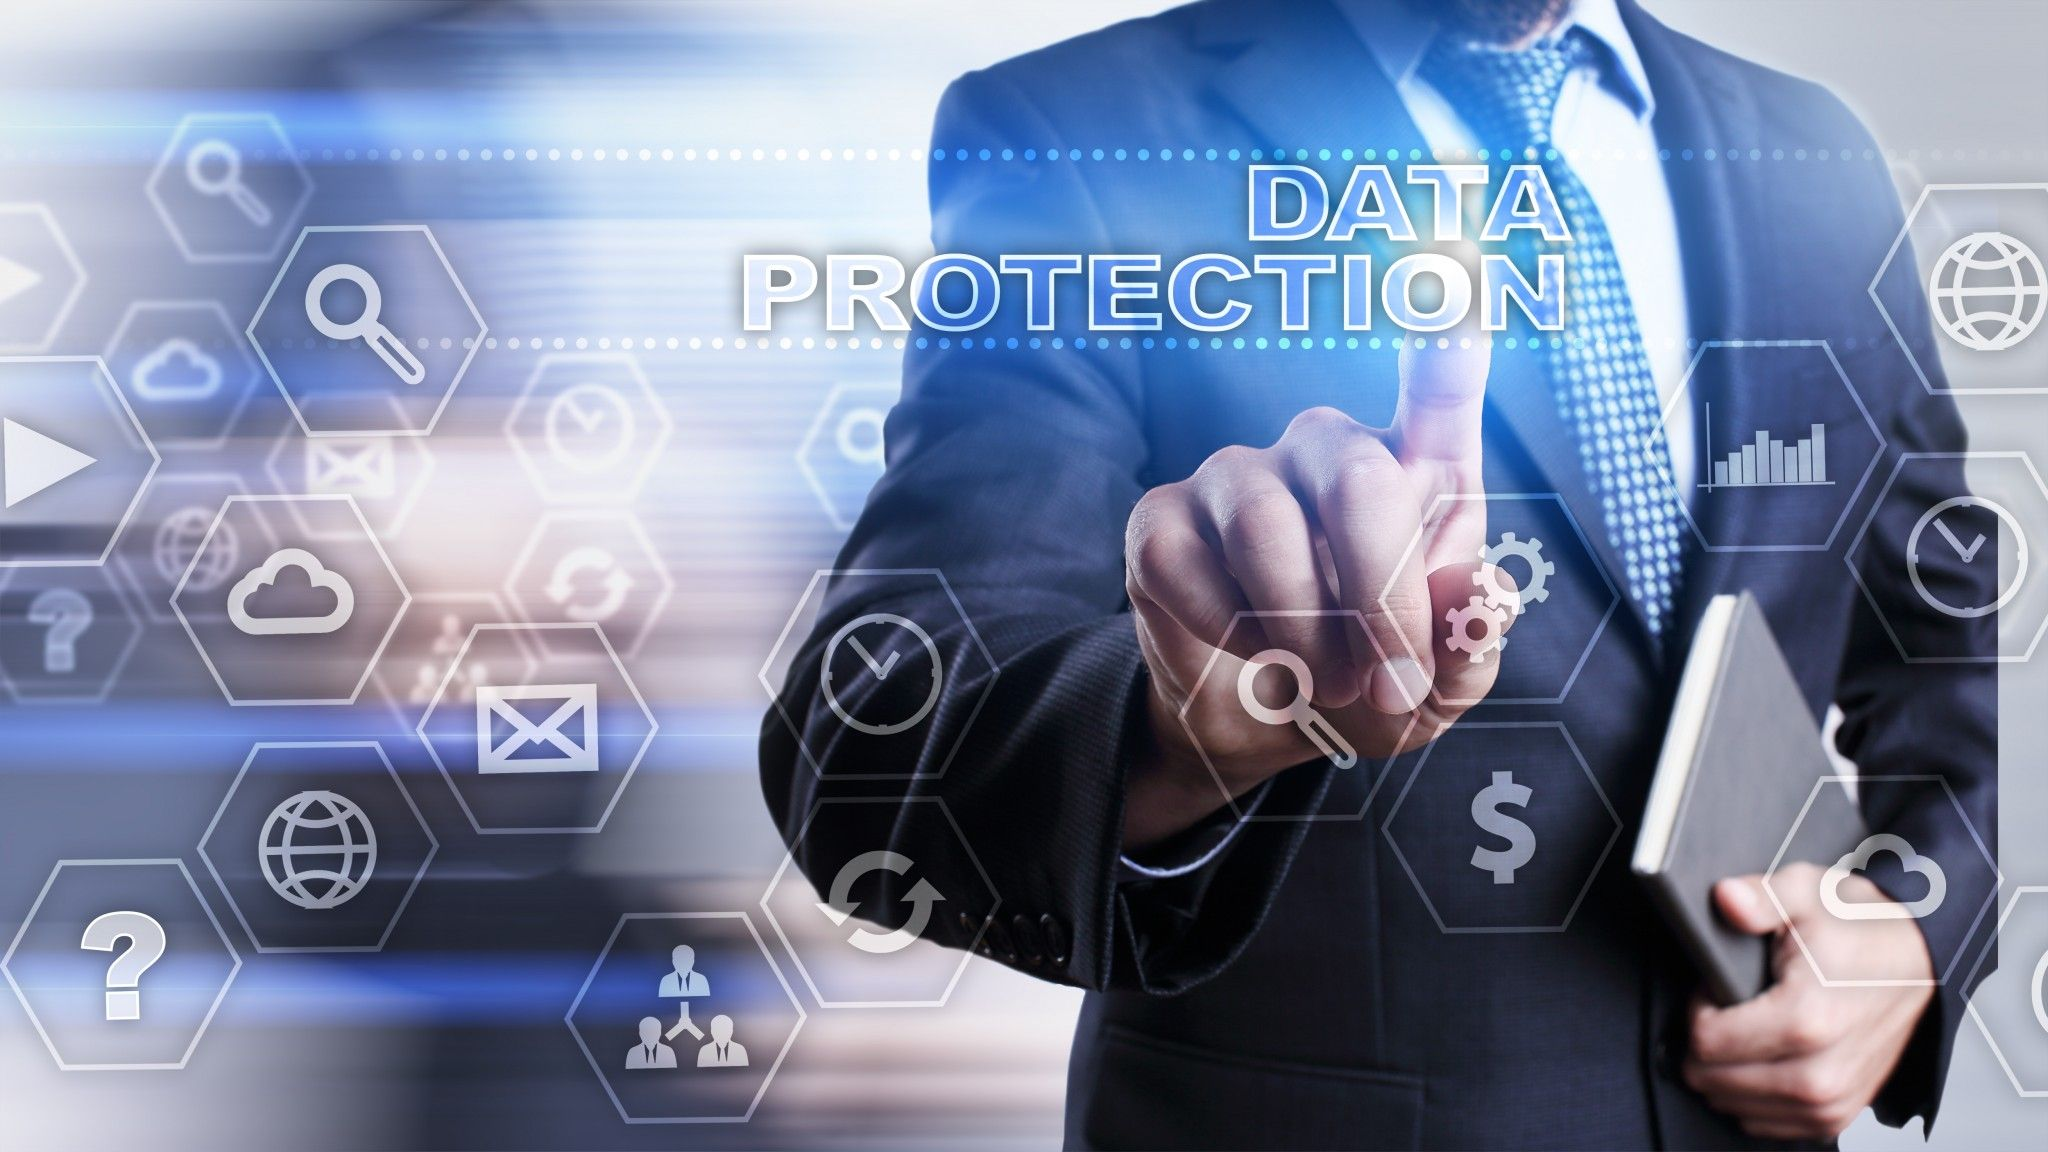 Data protection training Elearning module Computer